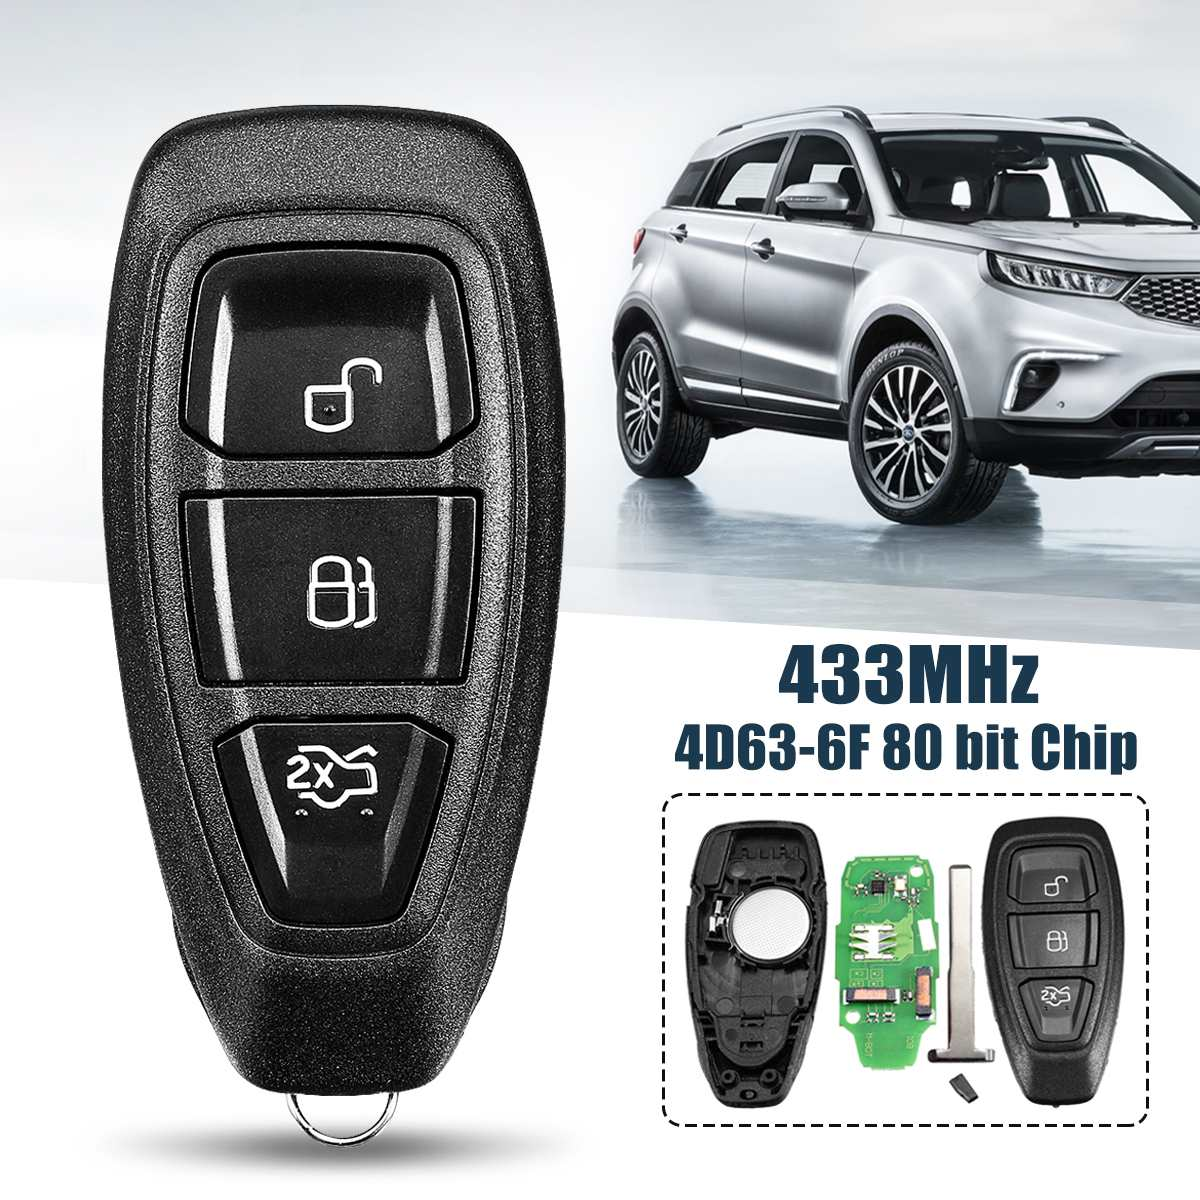 433Mhz 3 Button Smart Intelligent full Remote Key for Ford B-Max for C-Max for Focus for Galaxy KR55WK48801 4D83 80bit433Mhz 3 Button Smart Intelligent full Remote Key for Ford B-Max for C-Max for Focus for Galaxy KR55WK48801 4D83 80bit